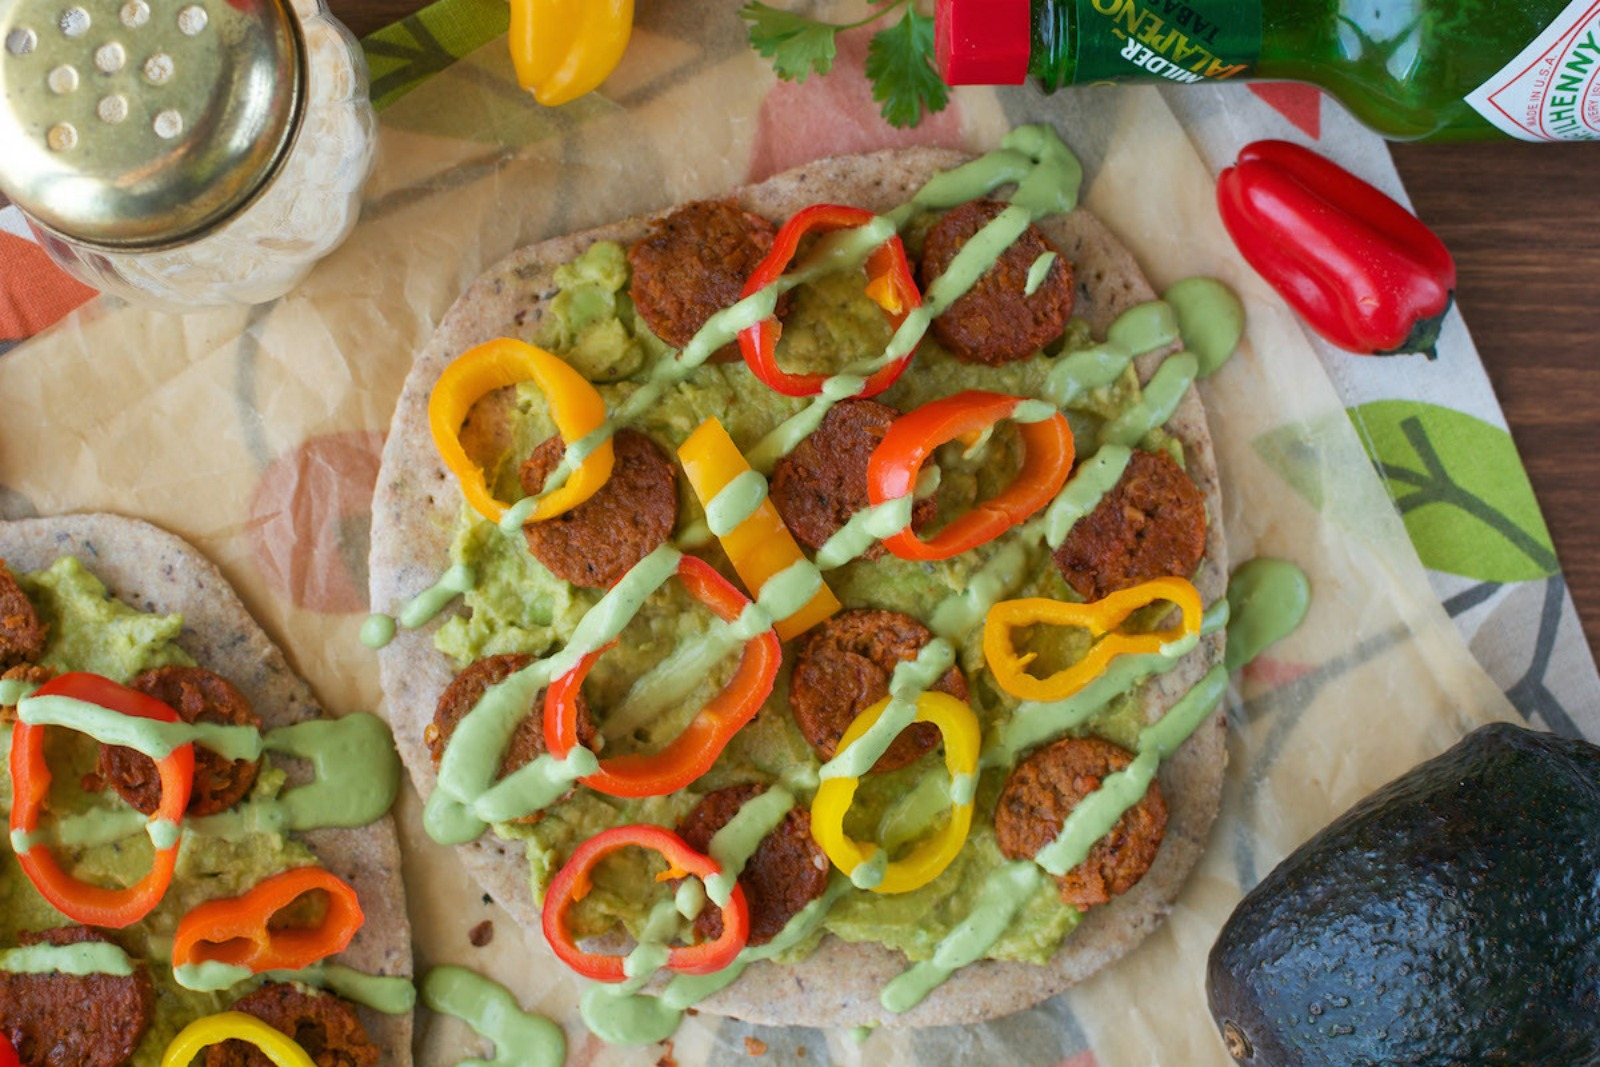 chipotle sausage, peppers, and guacamole